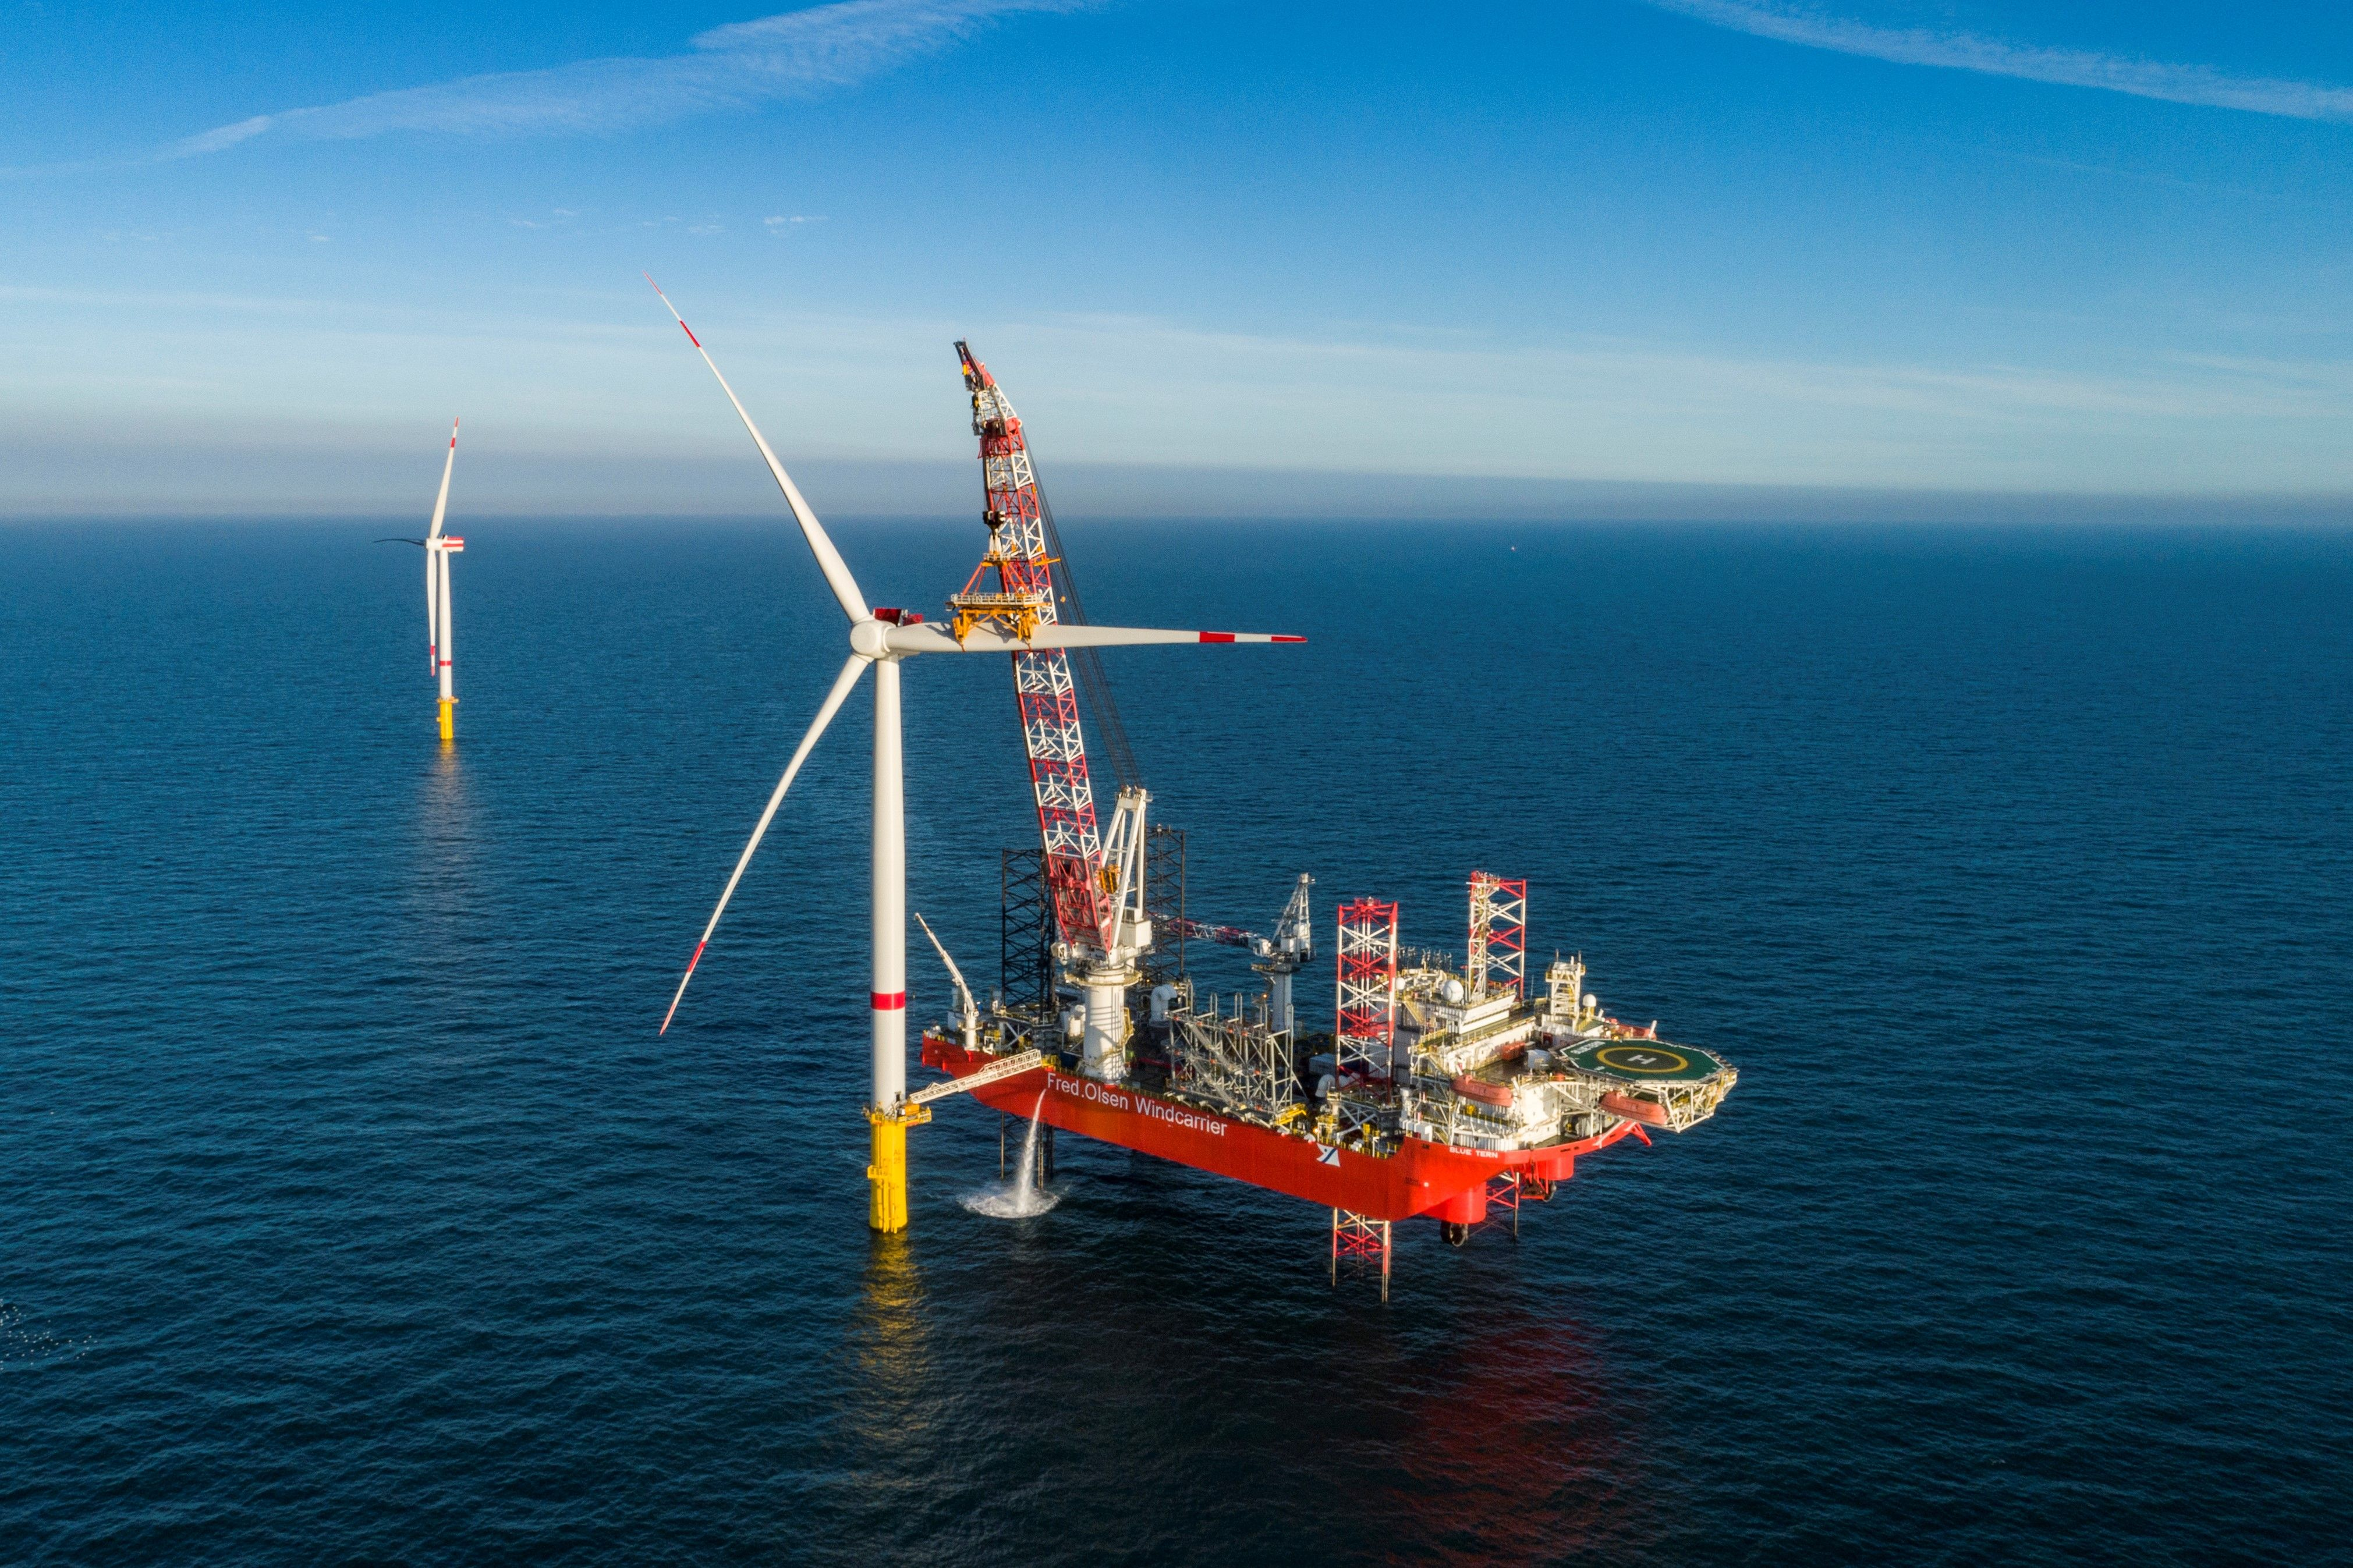 EnBW Offshore Windpark Hohe See (Photo: EnBW)